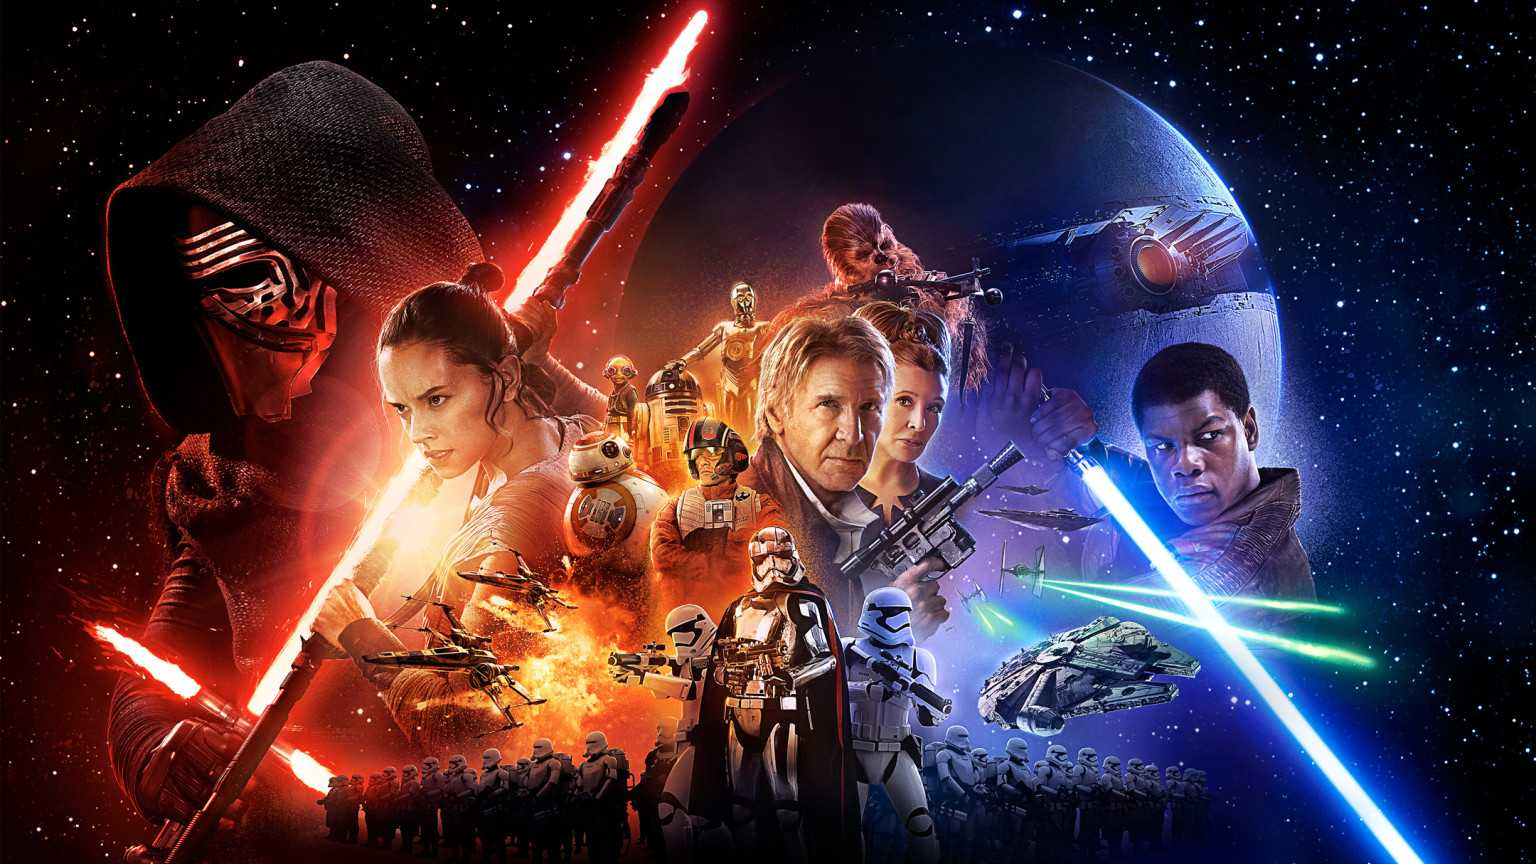 Star Wars: The Force Awakens Close To Shattering Avatar's Record | Star Wars